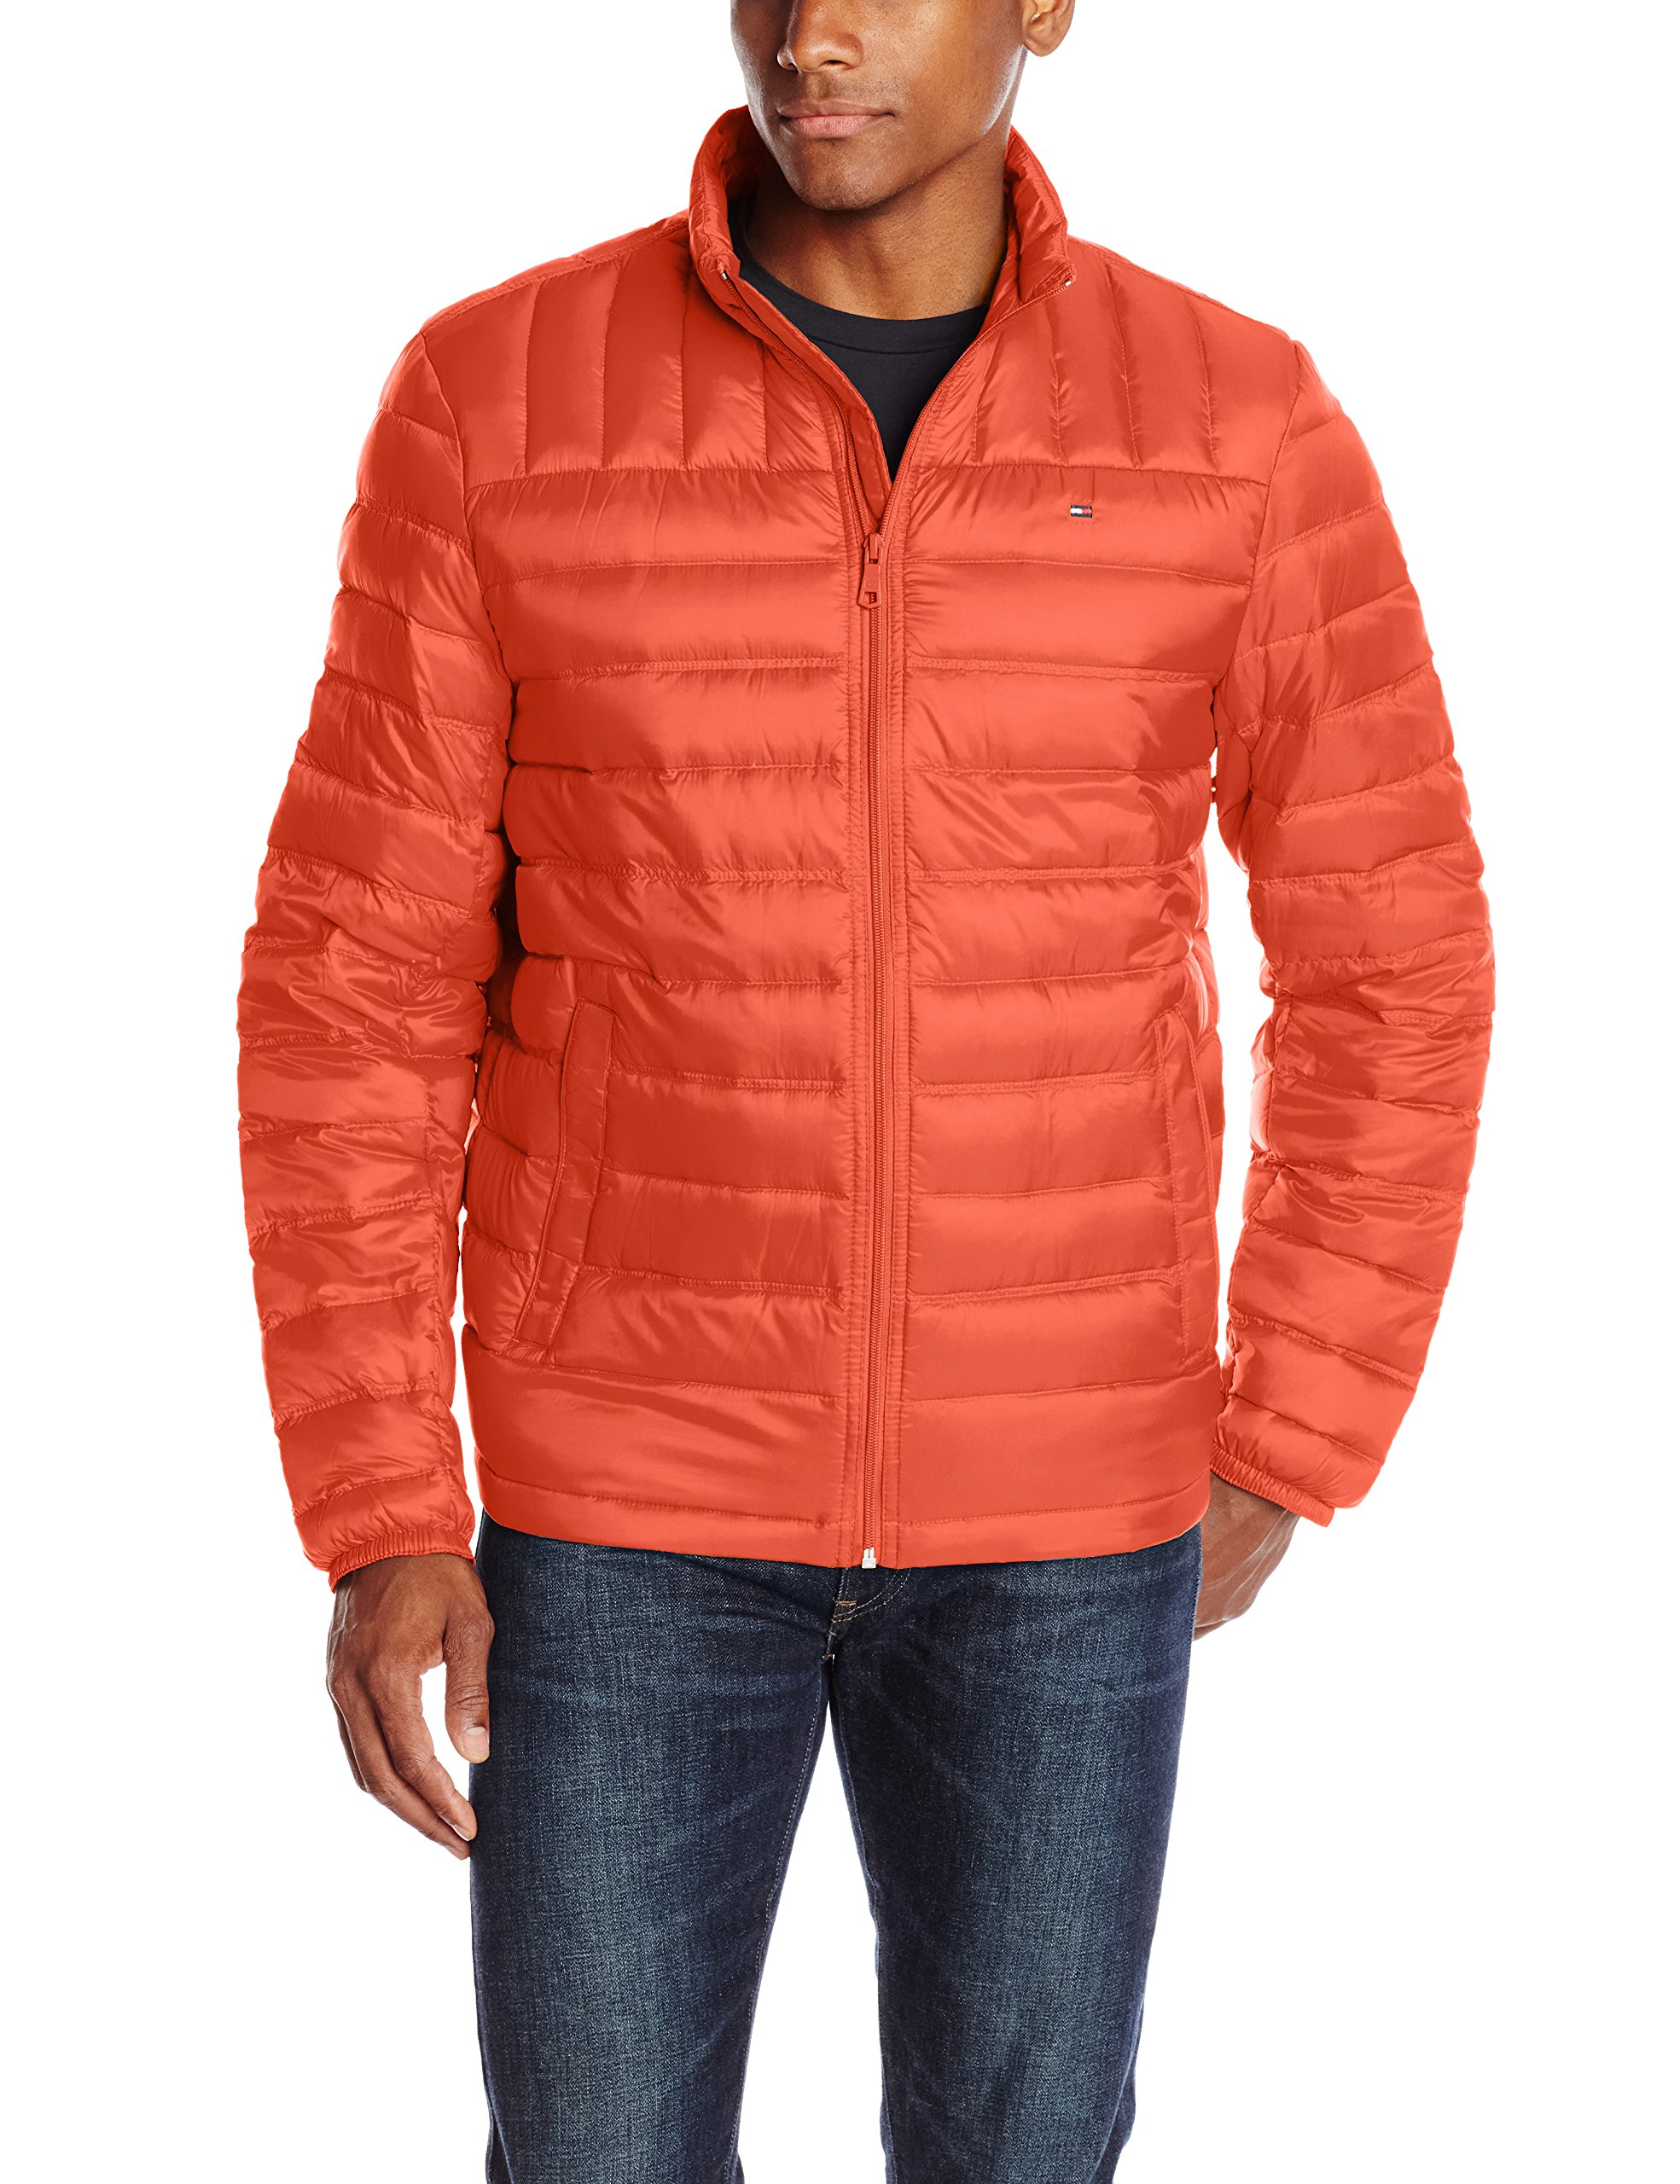 Tommy Hilfiger Men's Packable Down Jacket (Regular and Big & Tall Sizes), Orange, Small by Tommy Hilfiger